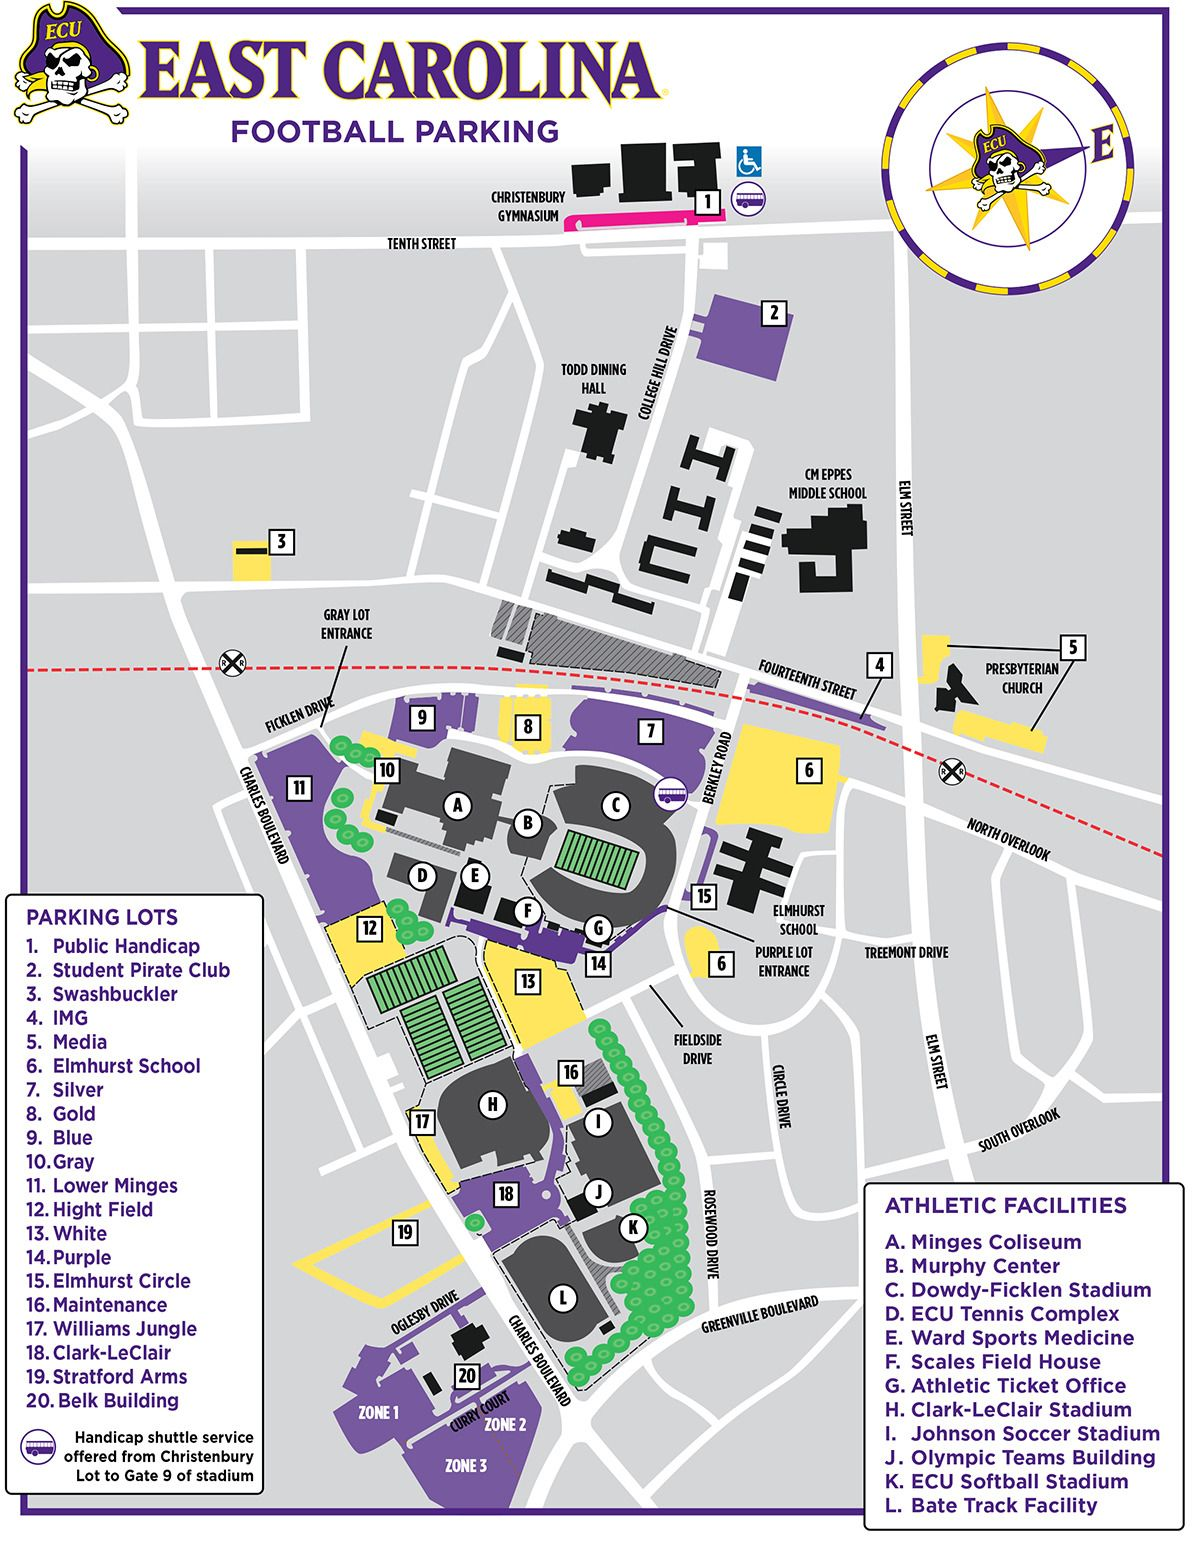 Ecu Football Parking Map Redesigned In 2011 In Illustrator By Building Elements Over Google Cincinnati Bearcats Football East Carolina Football Seating Charts